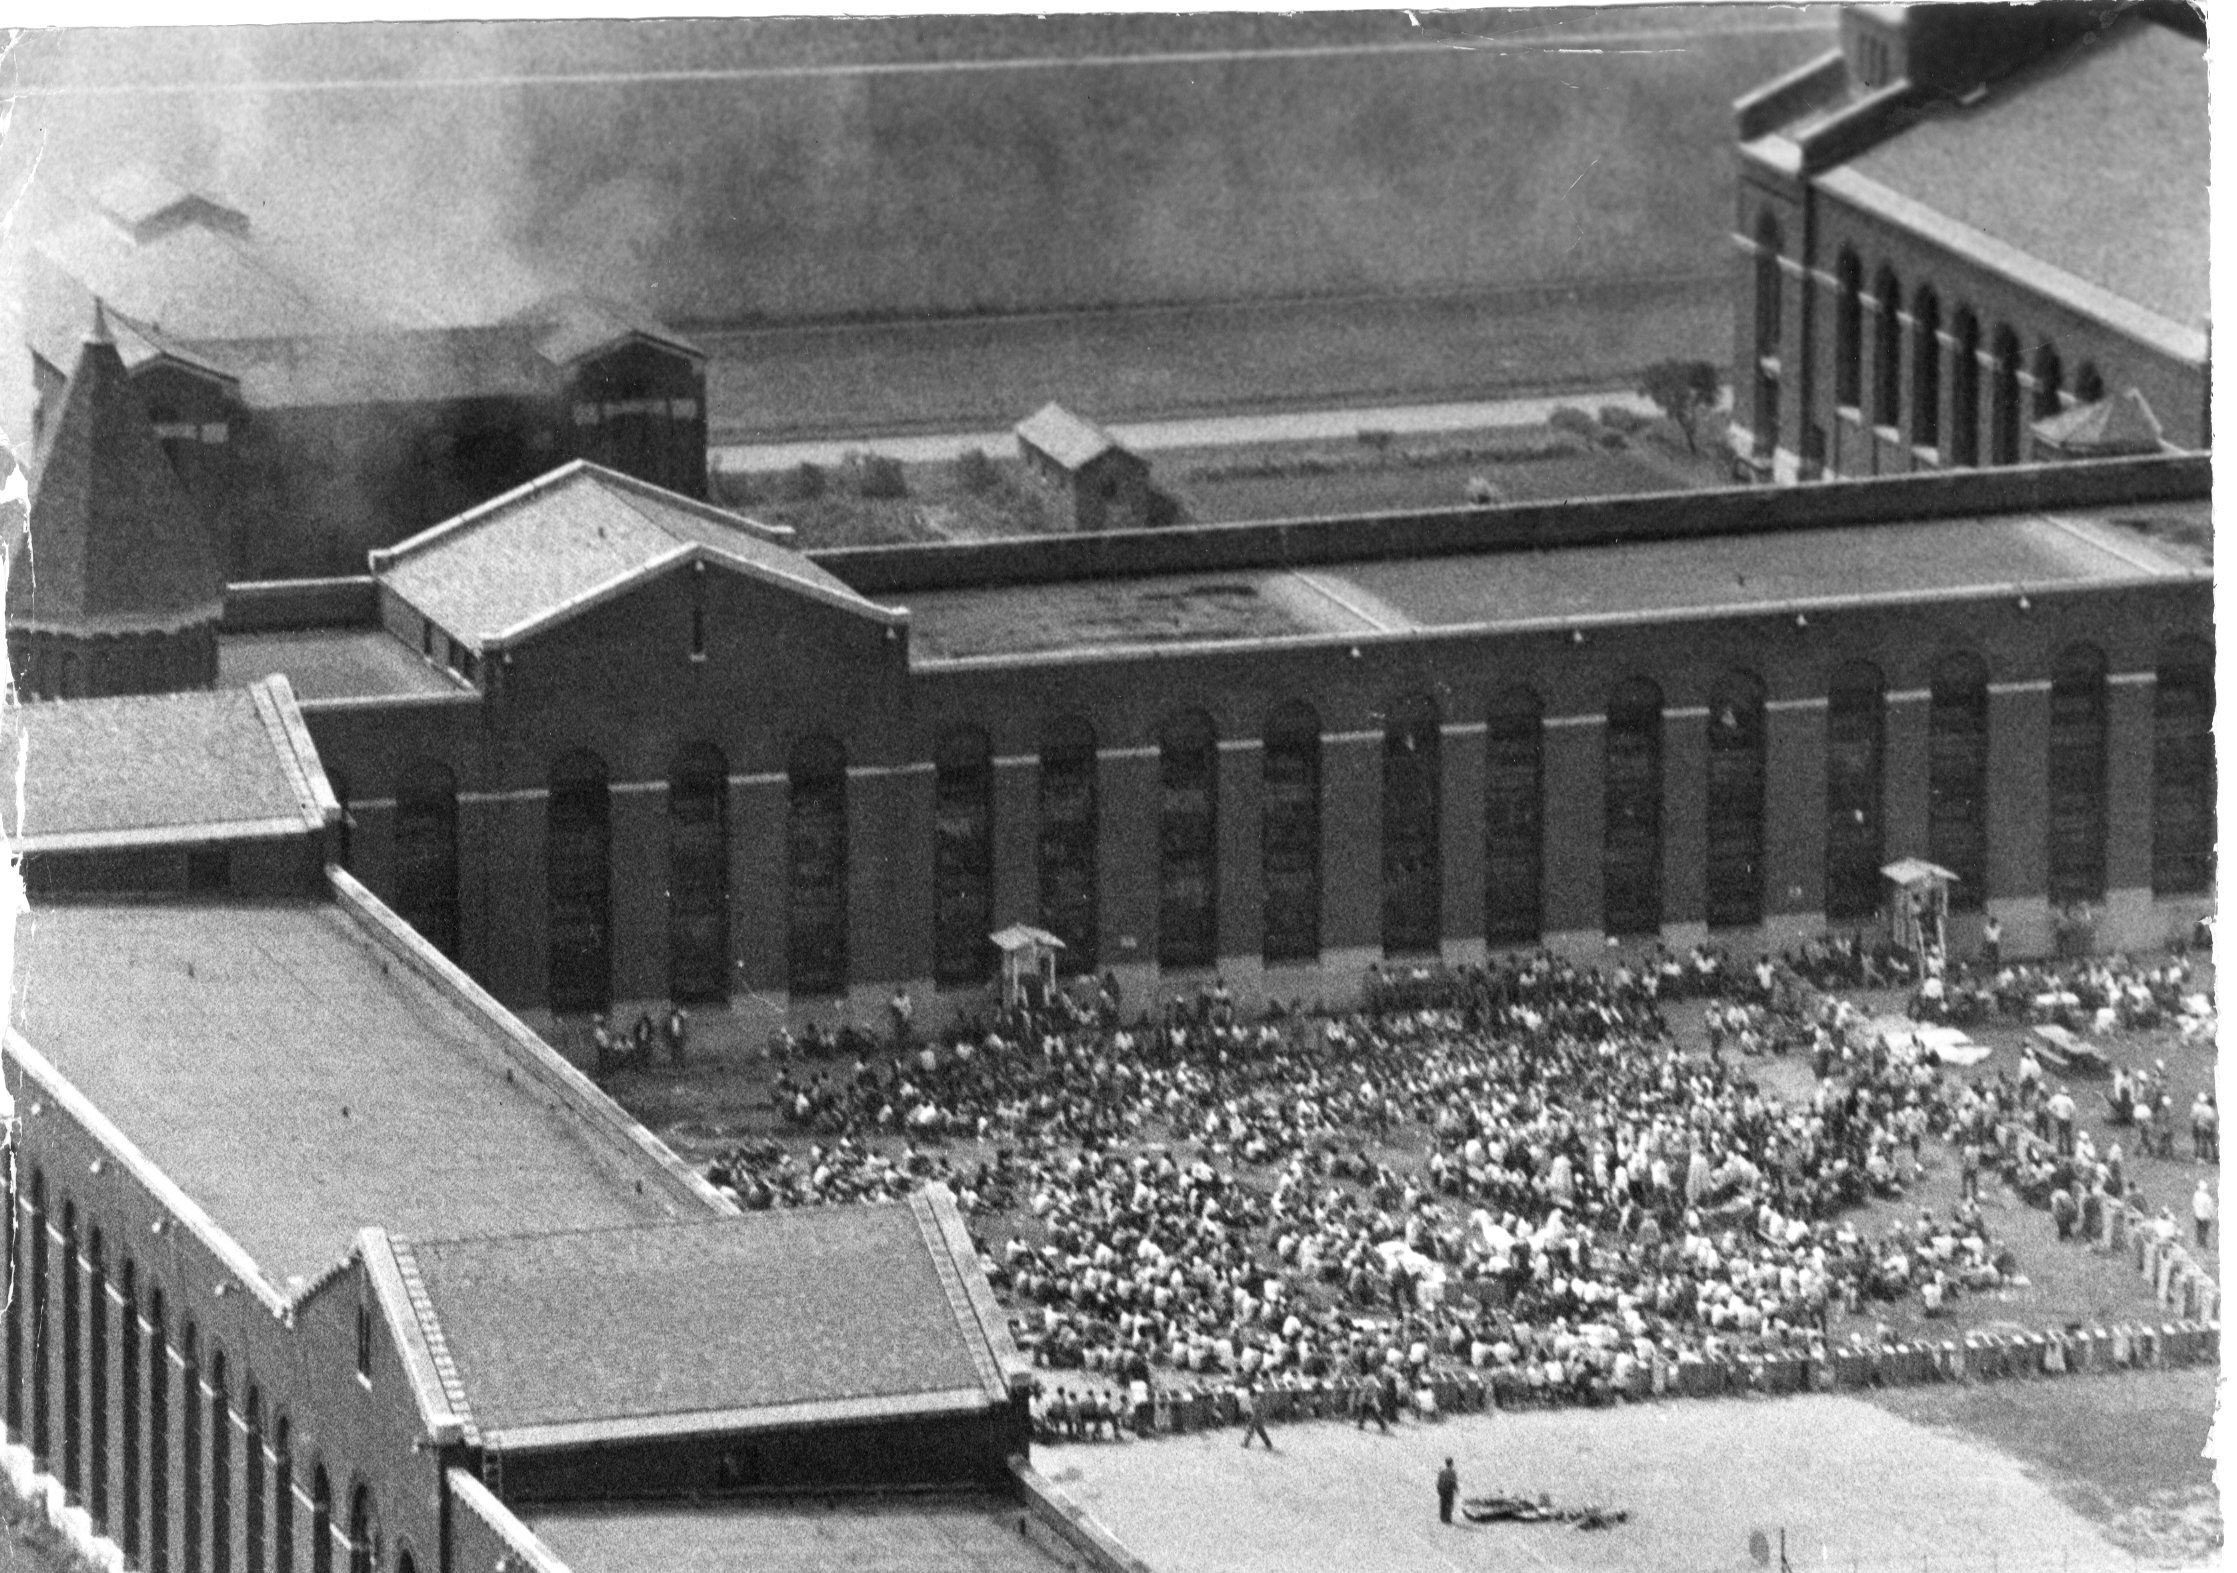 Inmates spilled into D Yard at Attica Correctional Facility before the deadly police assault on Sept. 13, 1971.